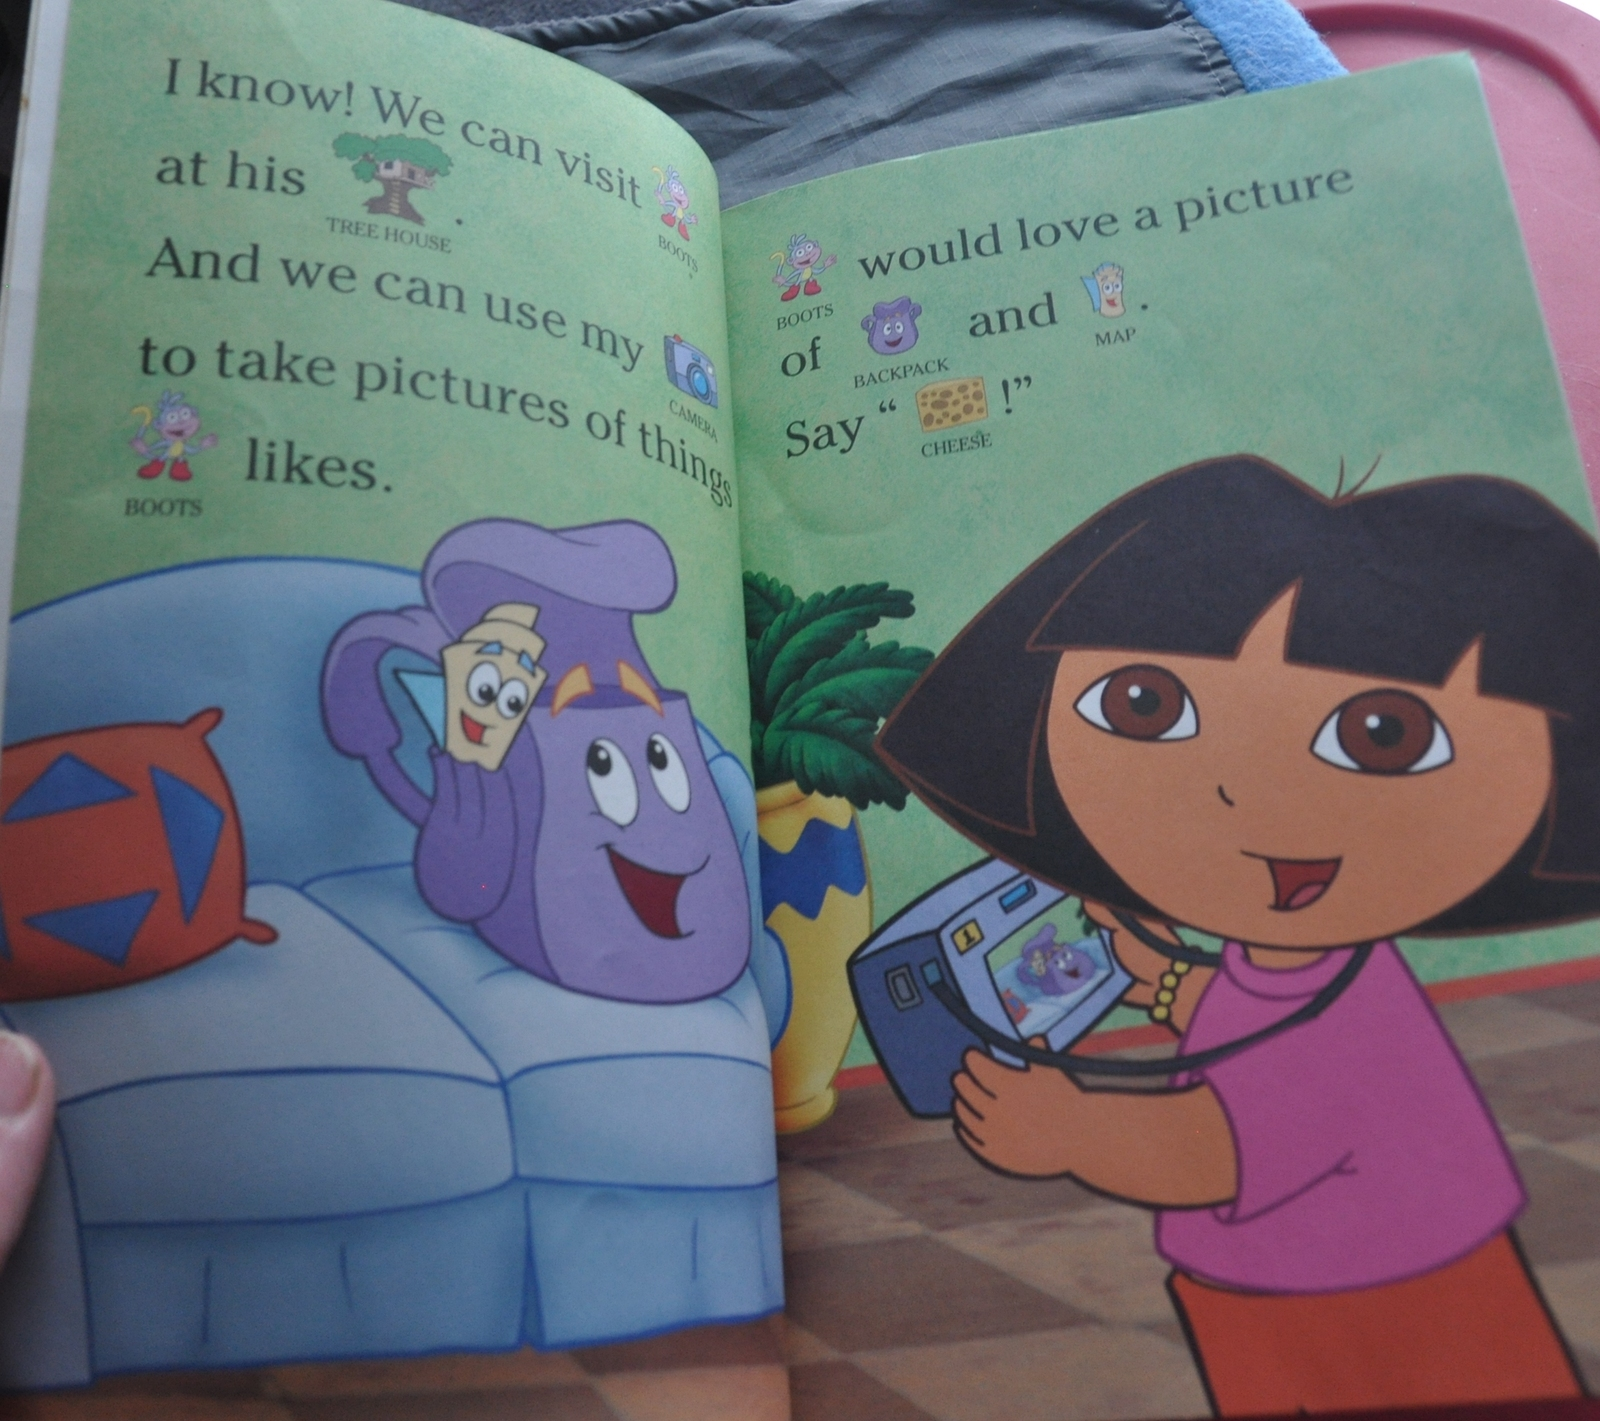 Dora the Explorer Cheering up a Sick Friend (Boots) W/ Pictures- Say Cheese Book